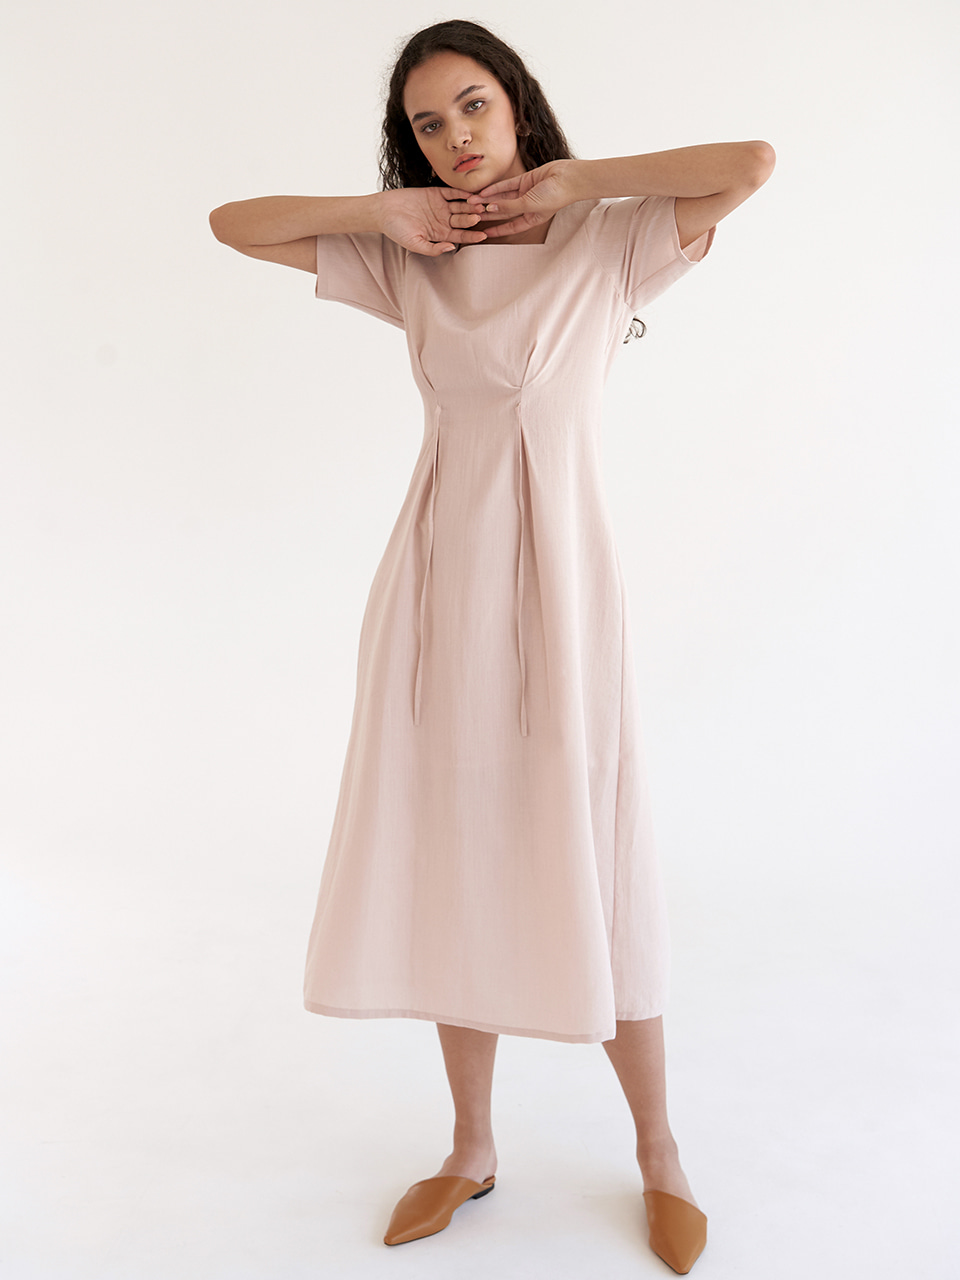 Sqaure Tuck Dress - Beige